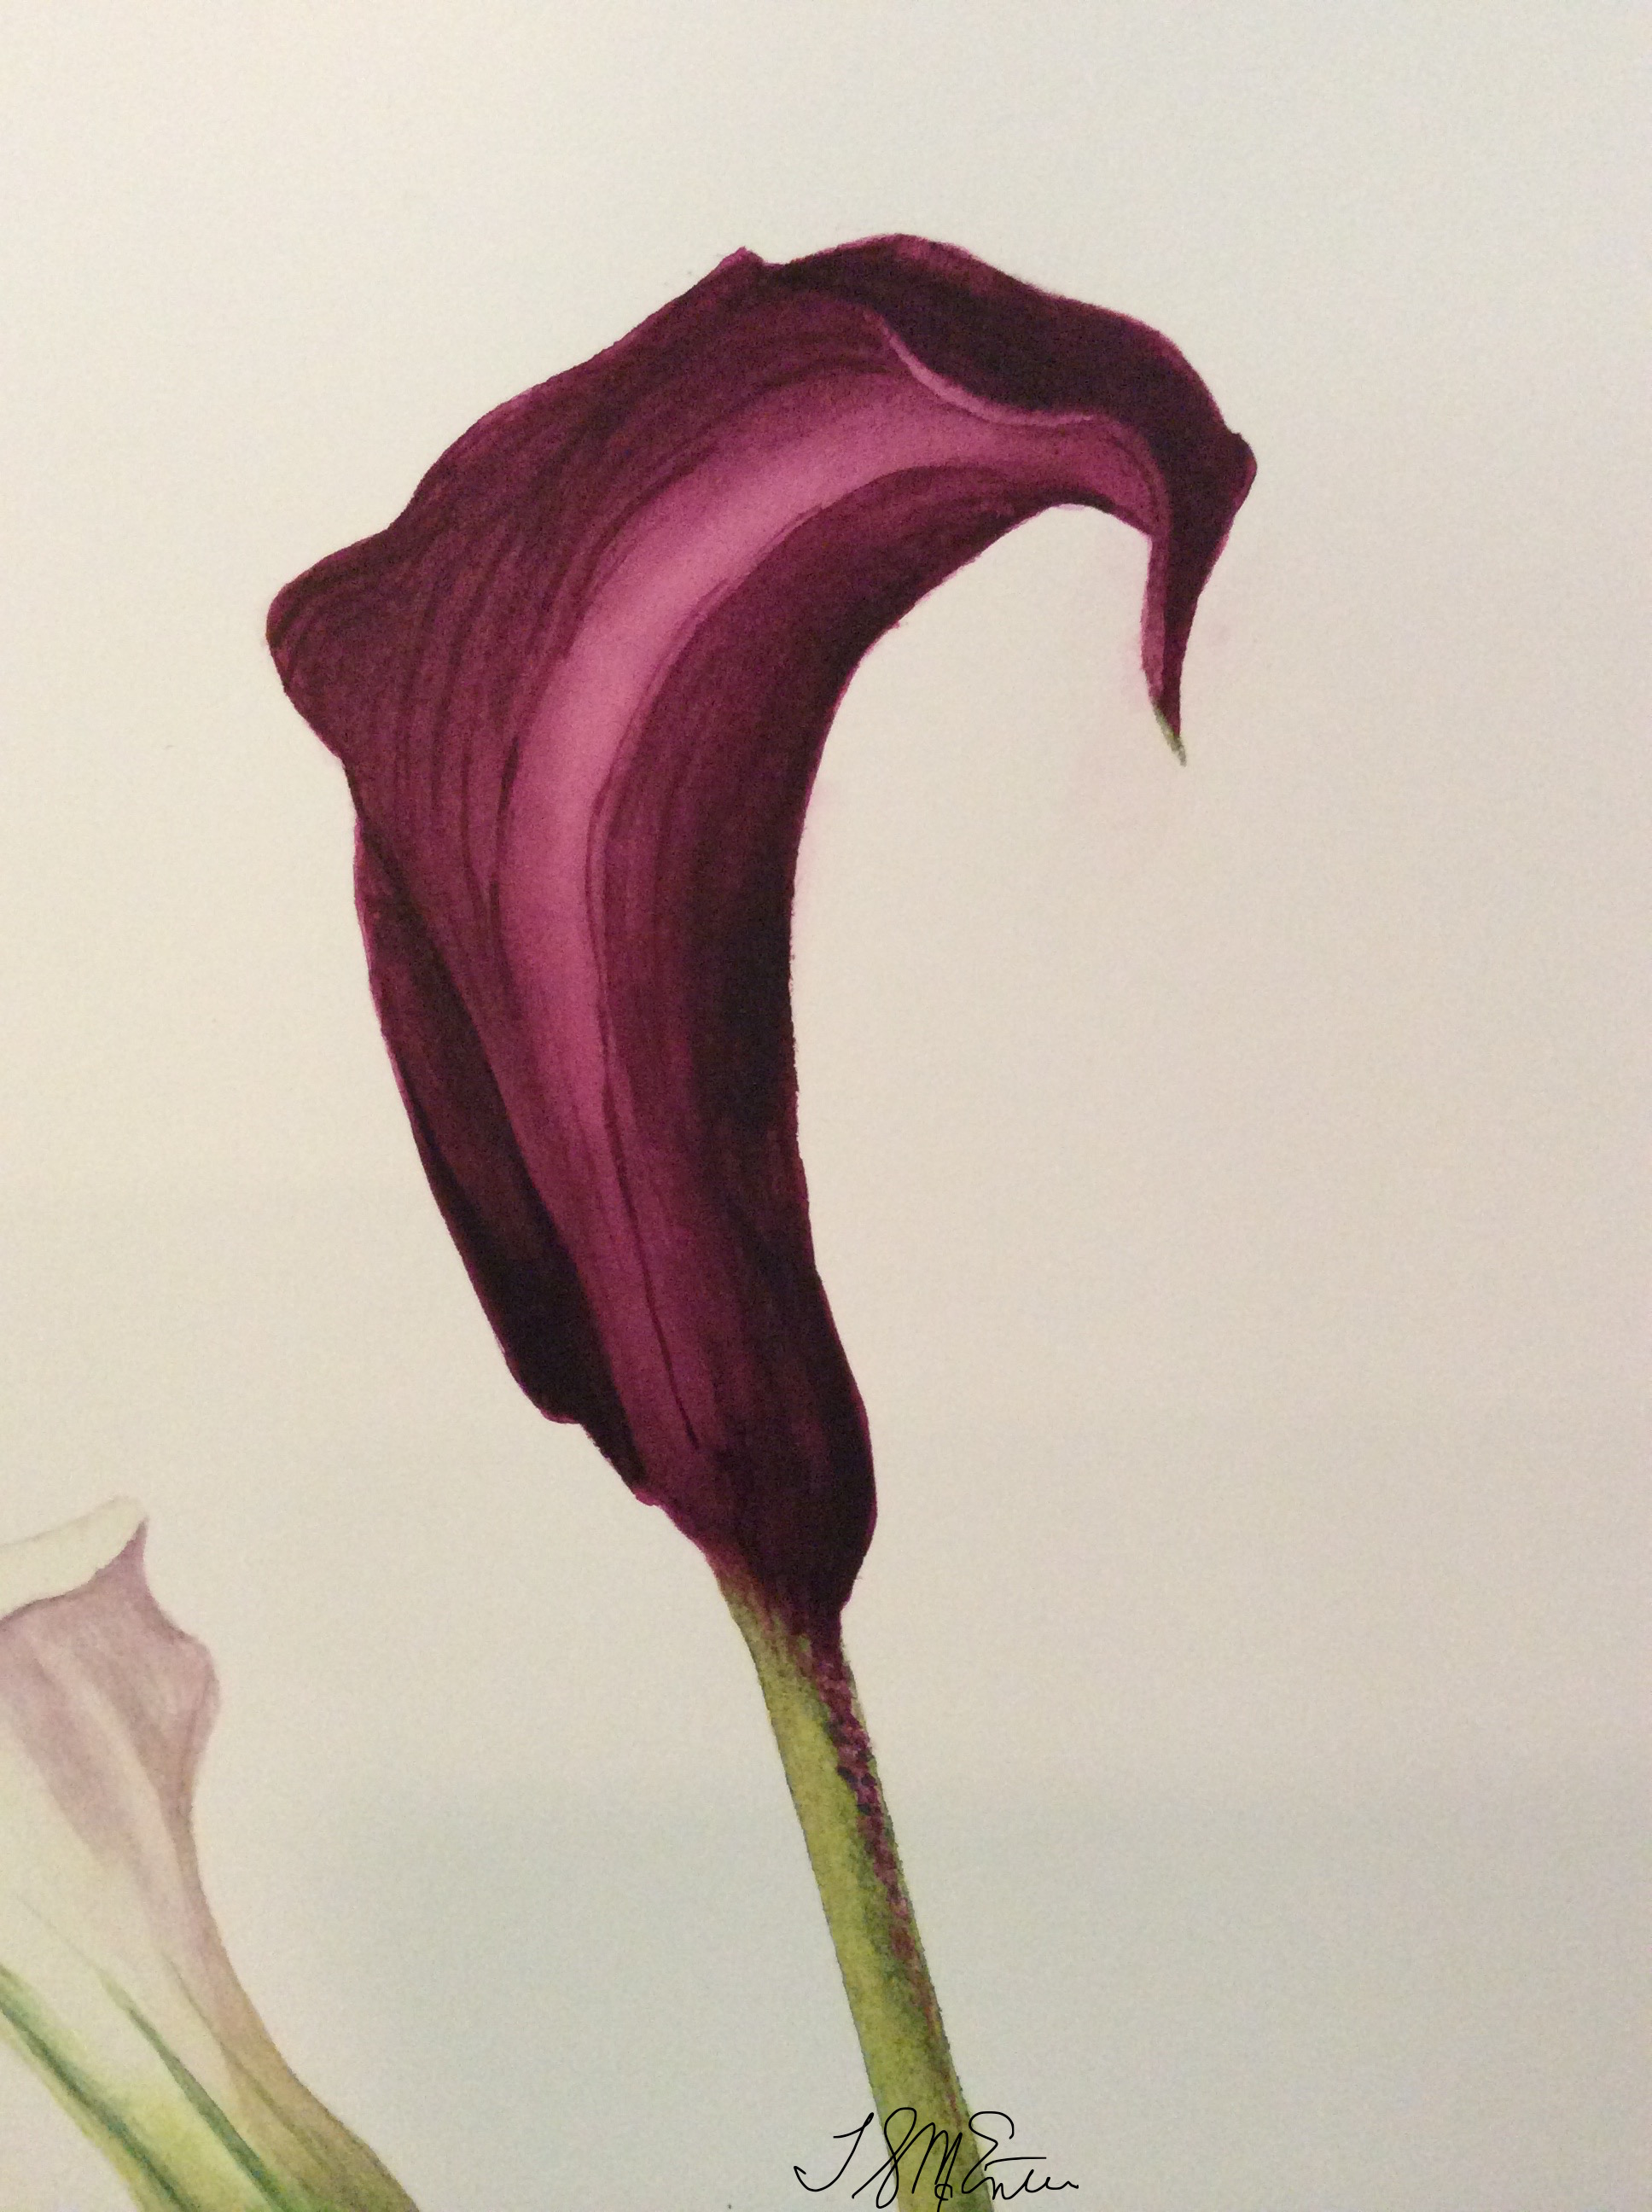 Calla lily close up